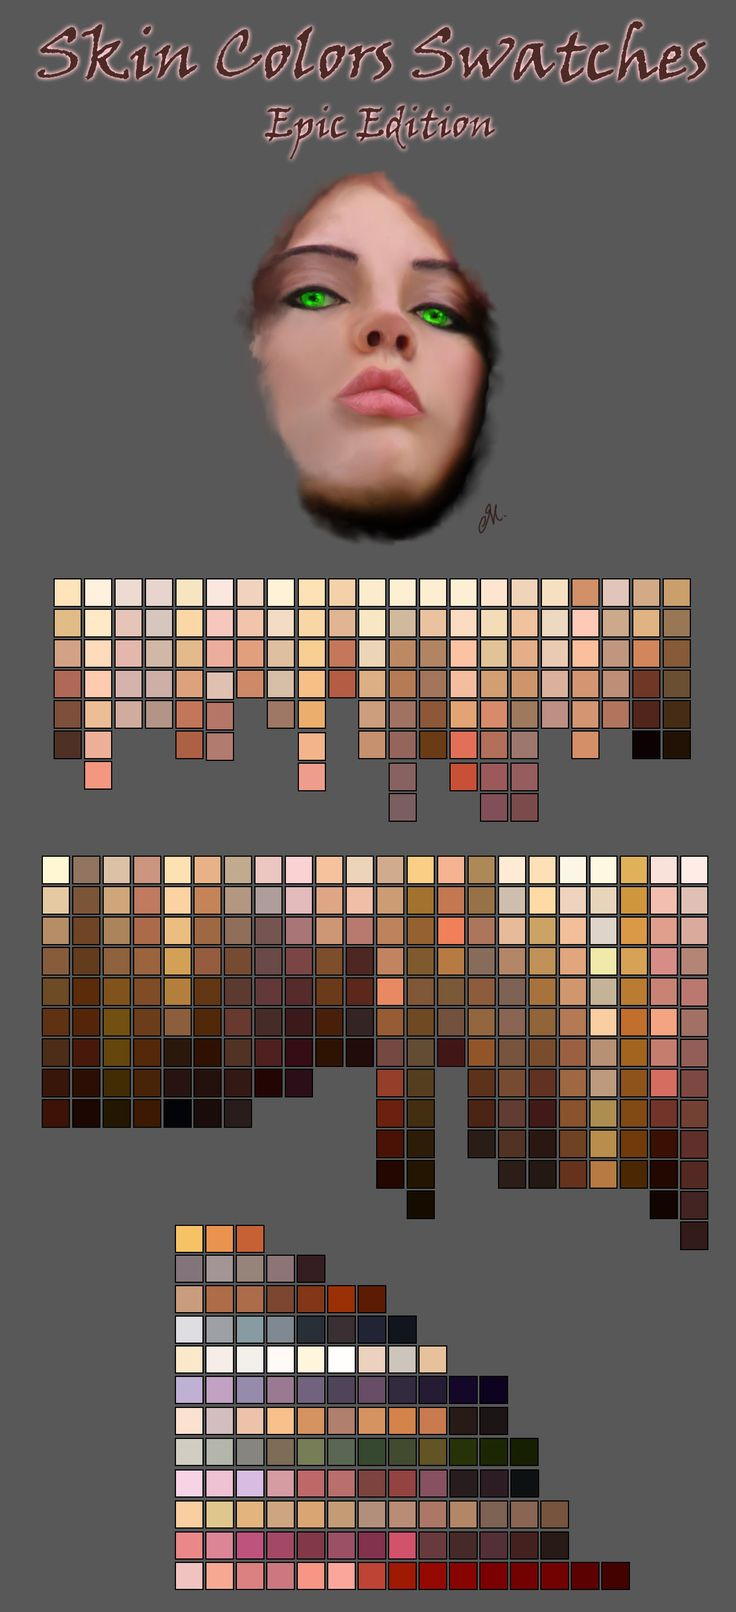 ༺༺༺♥Elles♥Heart♥Loves♥༺༺༺ ............♥Color Charts♥............ #Color #Chart #ColorChart #Inspiration #Design #Moodboard #Paint #Palette #Decorate #Art #Renovate ~ ♥SpaceMan's SpaceBook Journal On ZBrush Skin Color Swatches